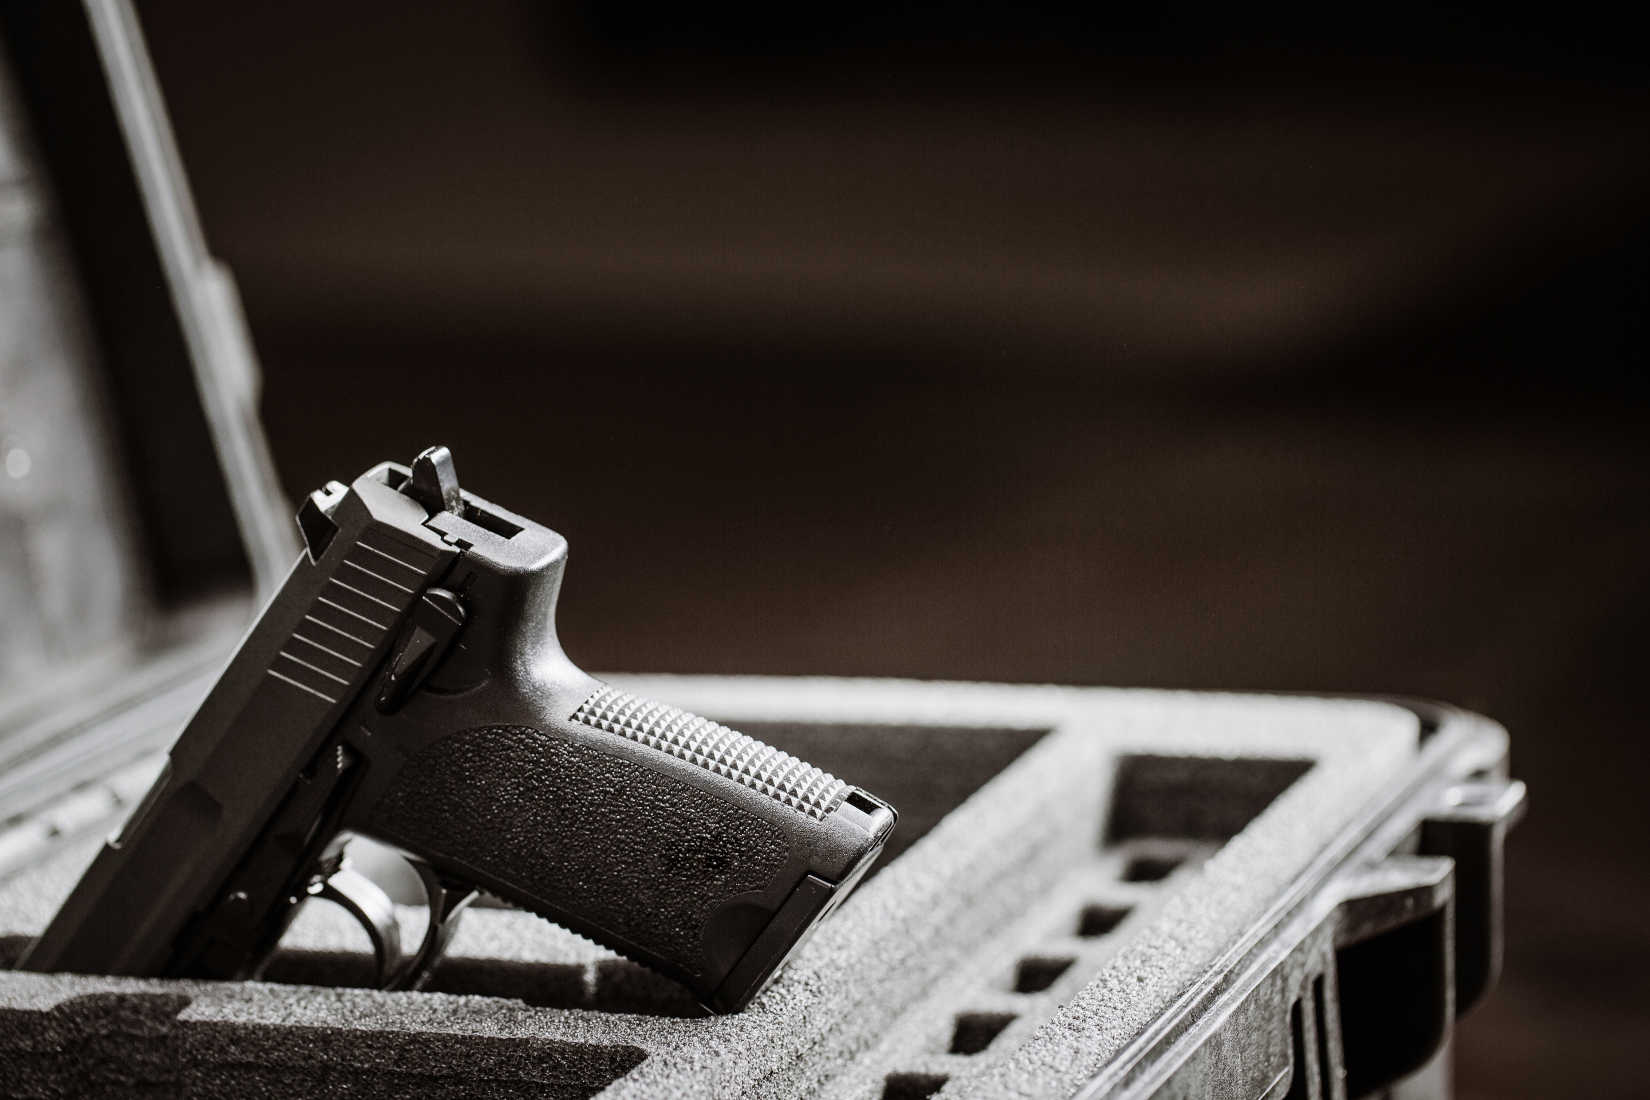 Oregon's Gun Storage Bill Expected to be Among the Strictest in the Country